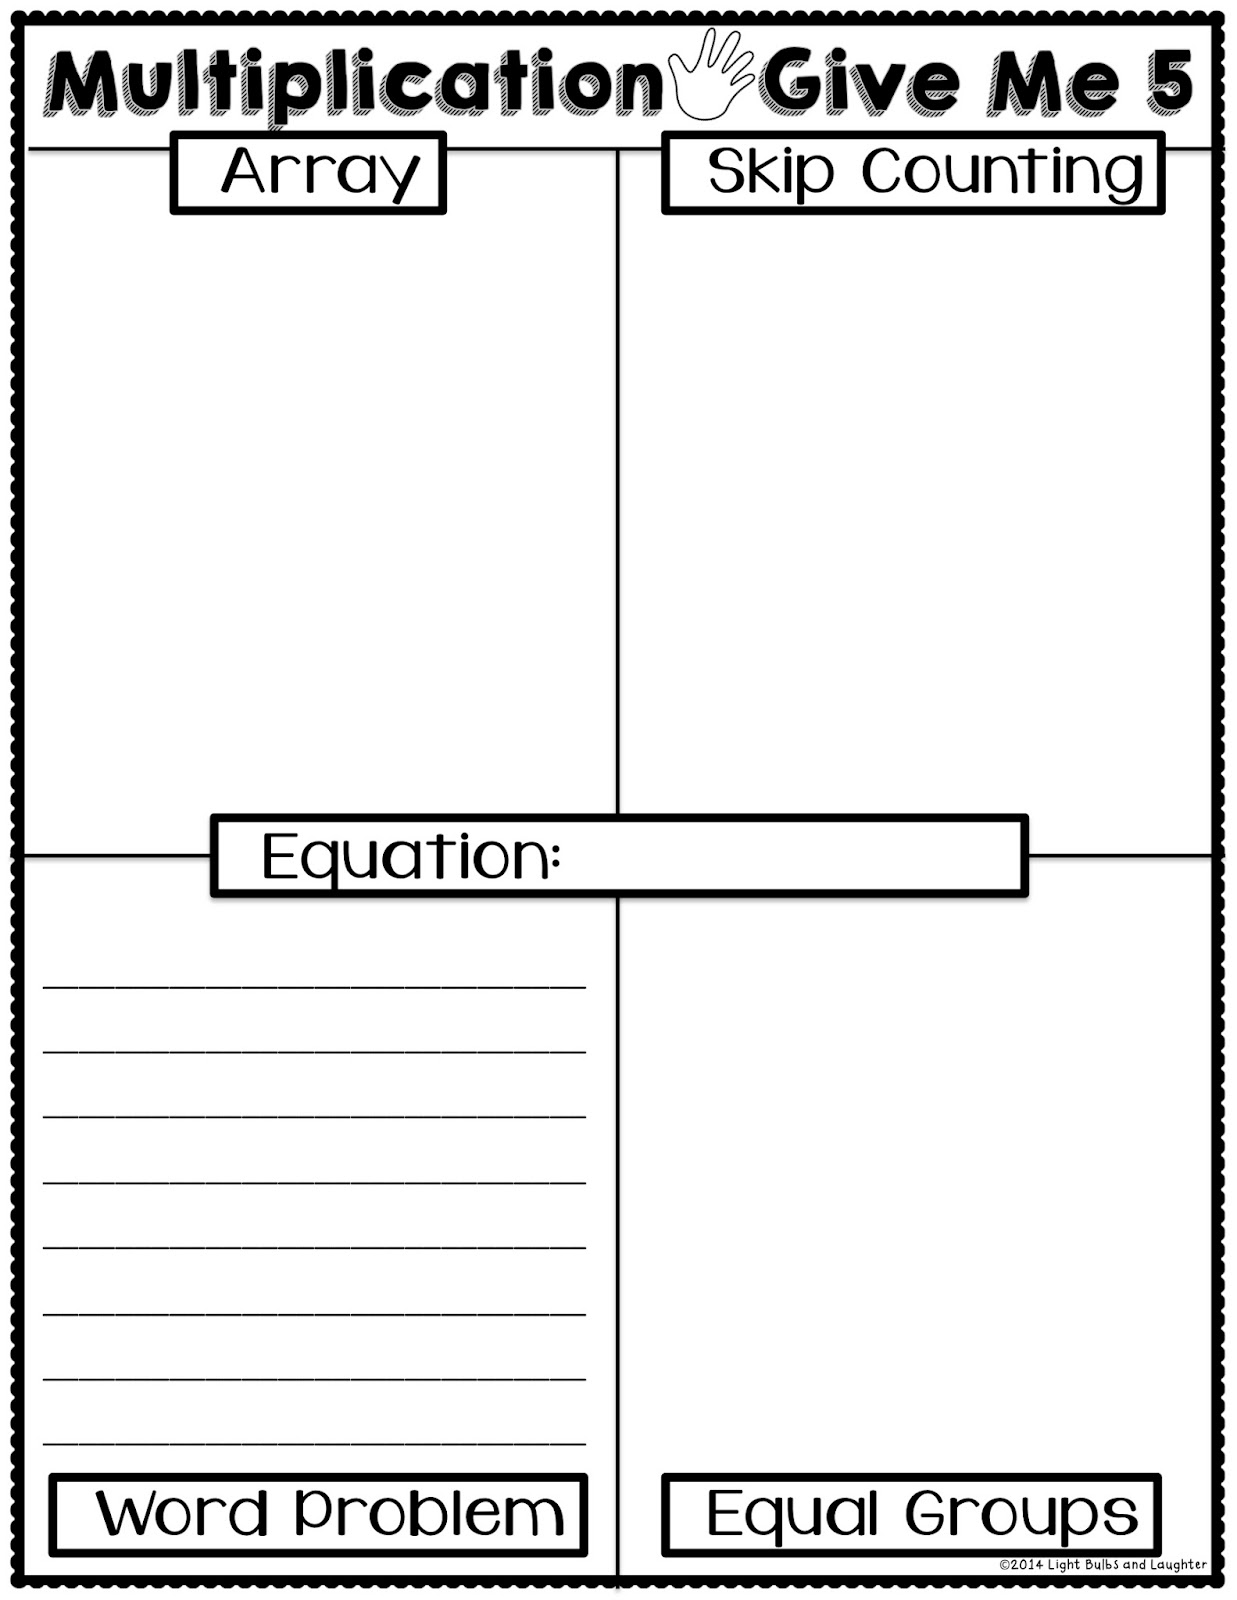 Light Bulbs and Laughter - Multiplication Give Me 5 Worksheet